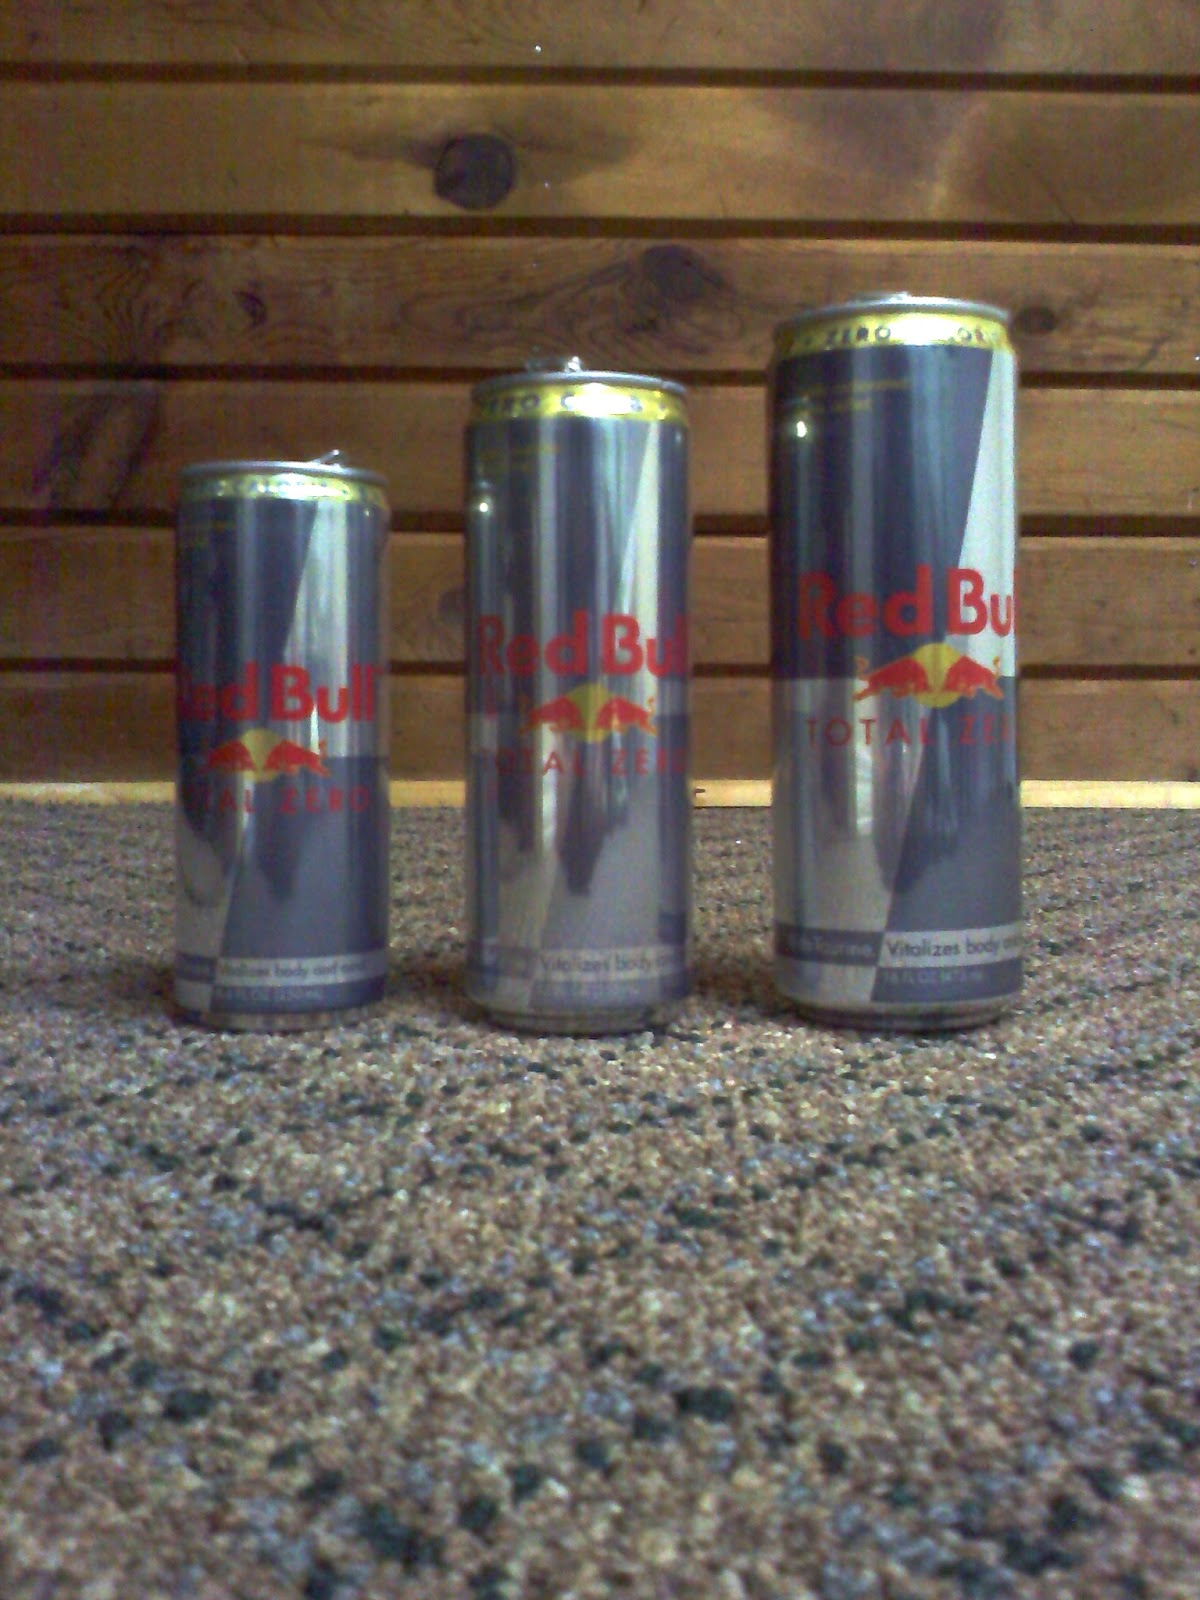 CAFFEINE!: Review for Red Bull Total Zero